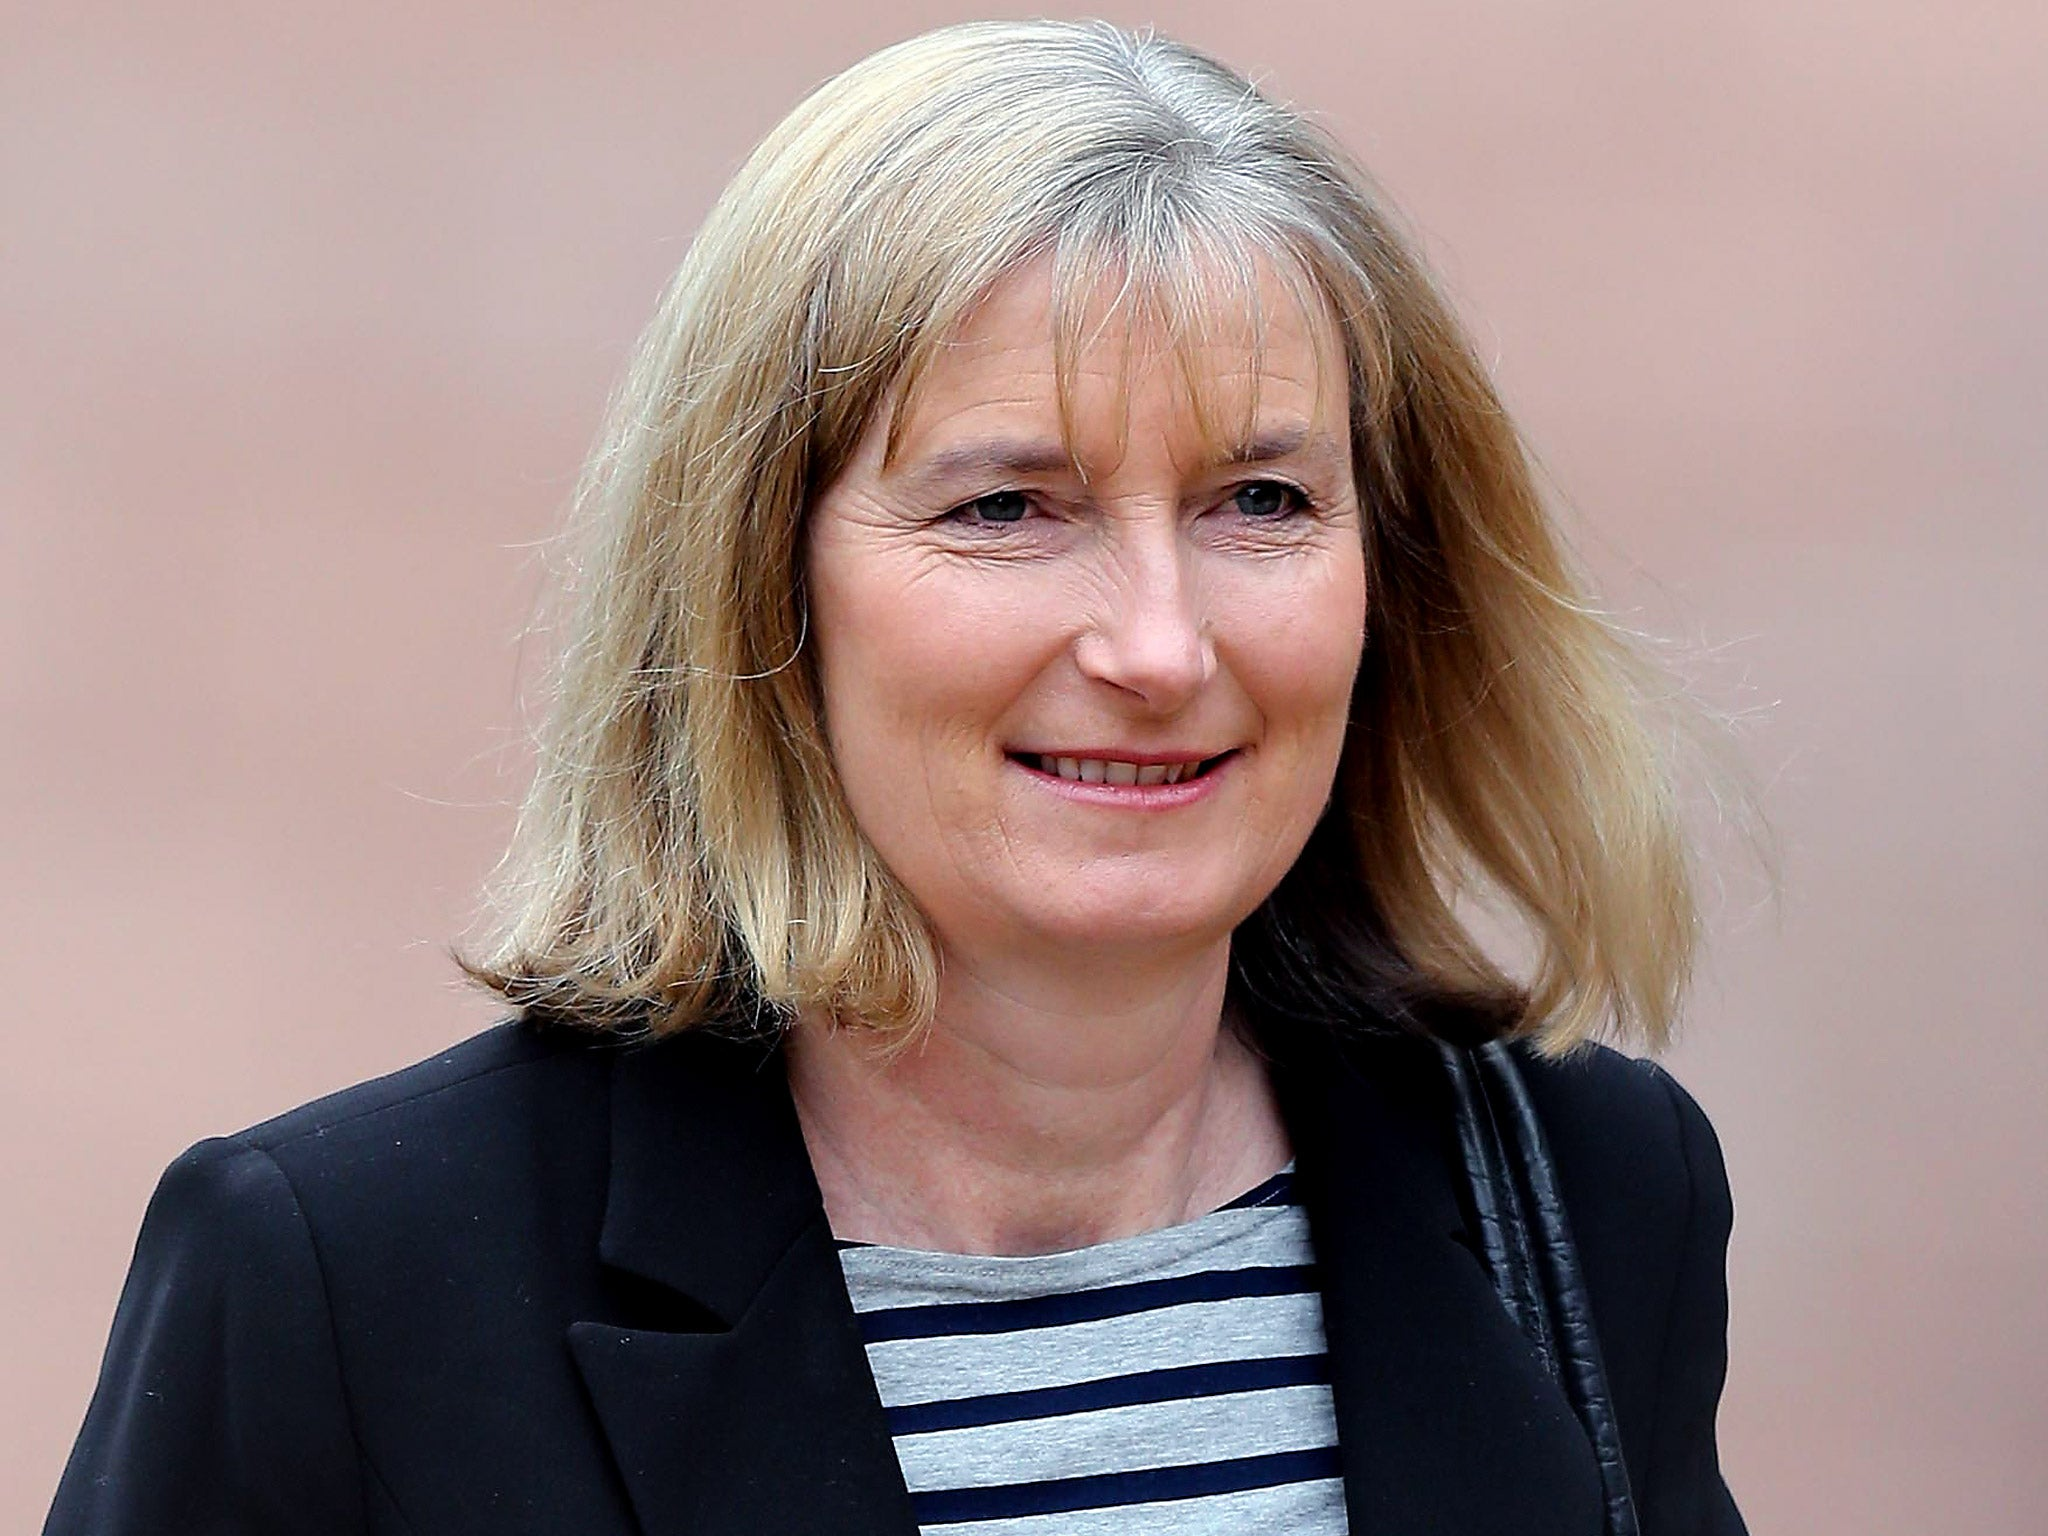 UK politics-LIVE: Government's rumoured NHS funding boost may not be enough, warns senior MP